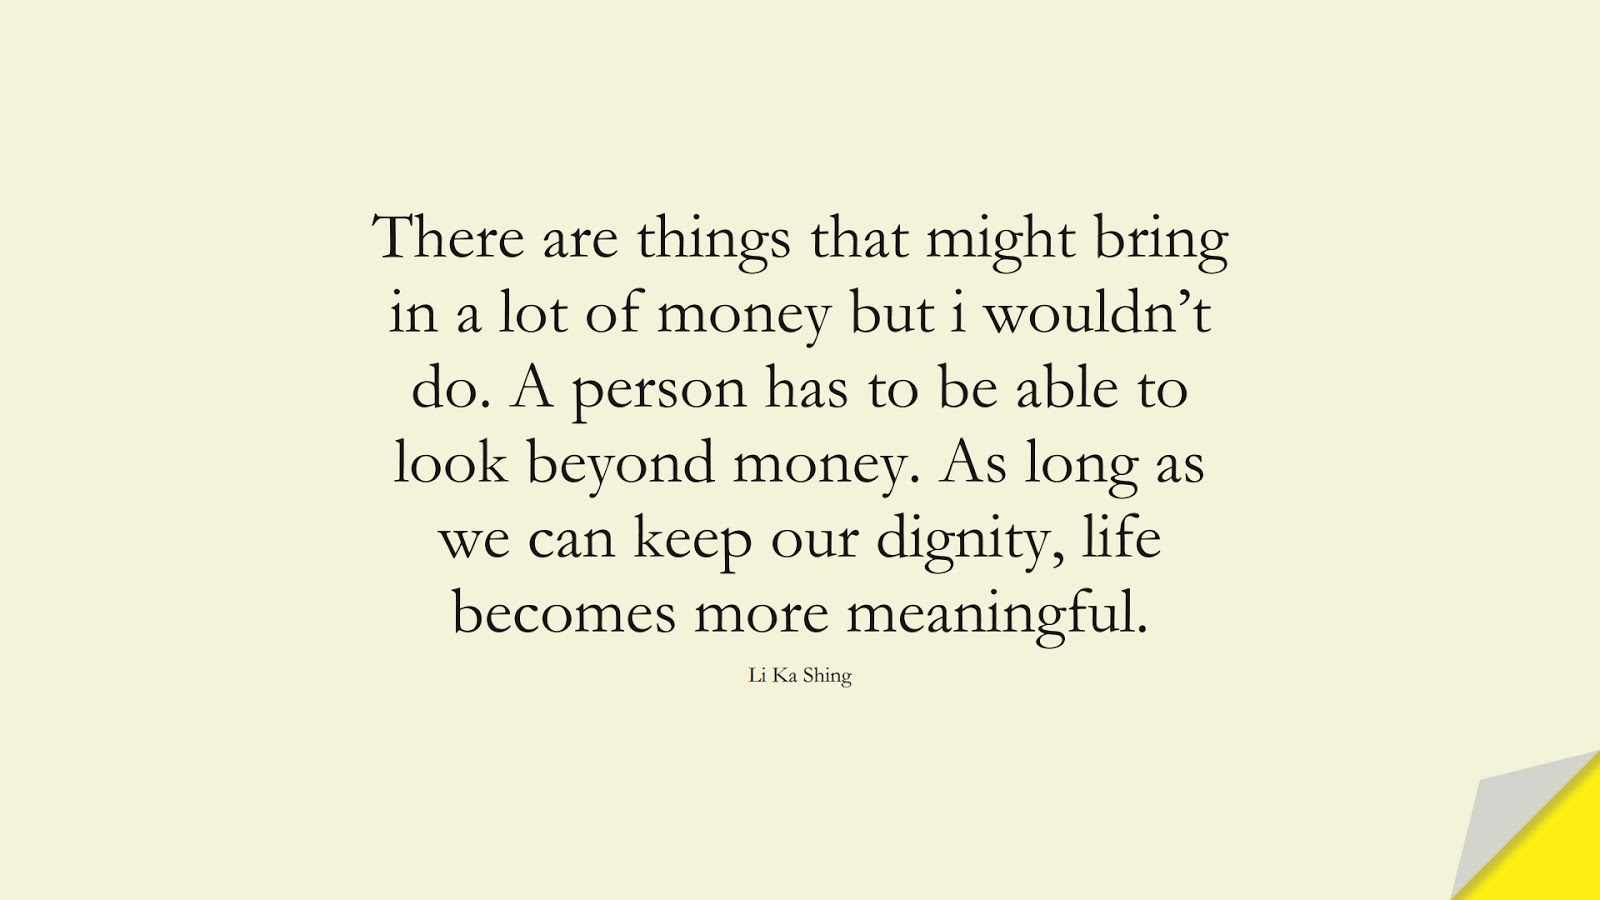 There are things that might bring in a lot of money but i wouldn't do. A person has to be able to look beyond money. As long as we can keep our dignity, life becomes more meaningful. (Li Ka Shing);  #MoneyQuotes